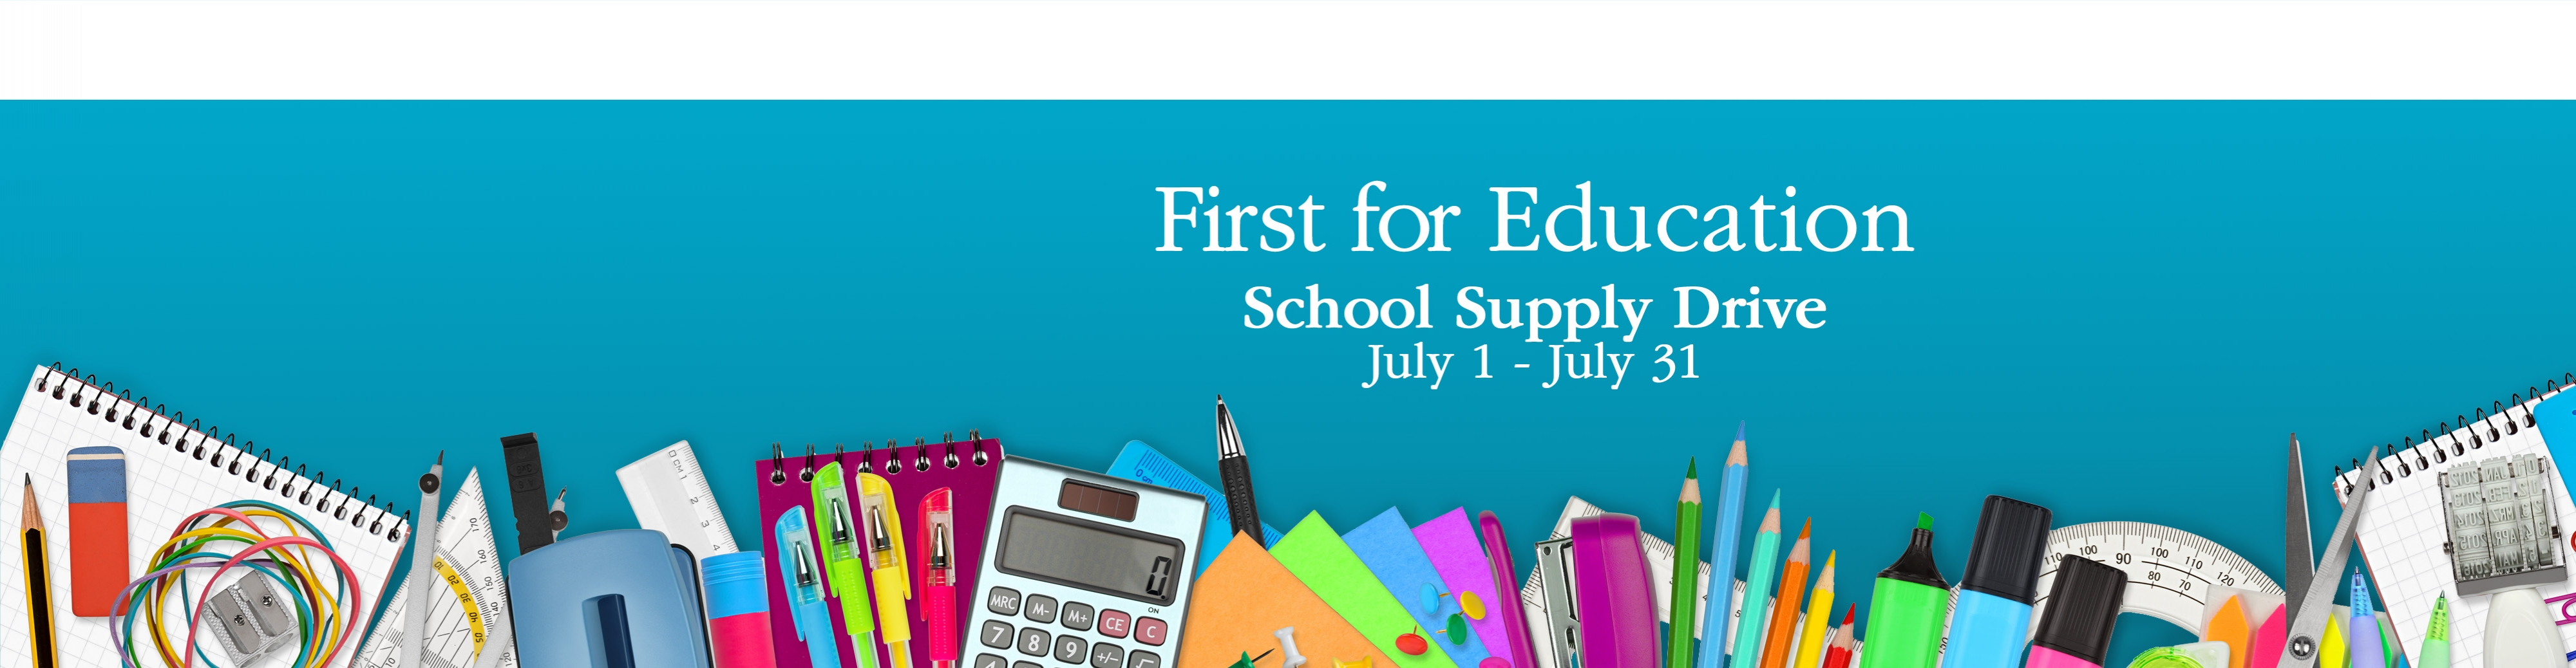 First For Education  School Supply Drive July 1-31